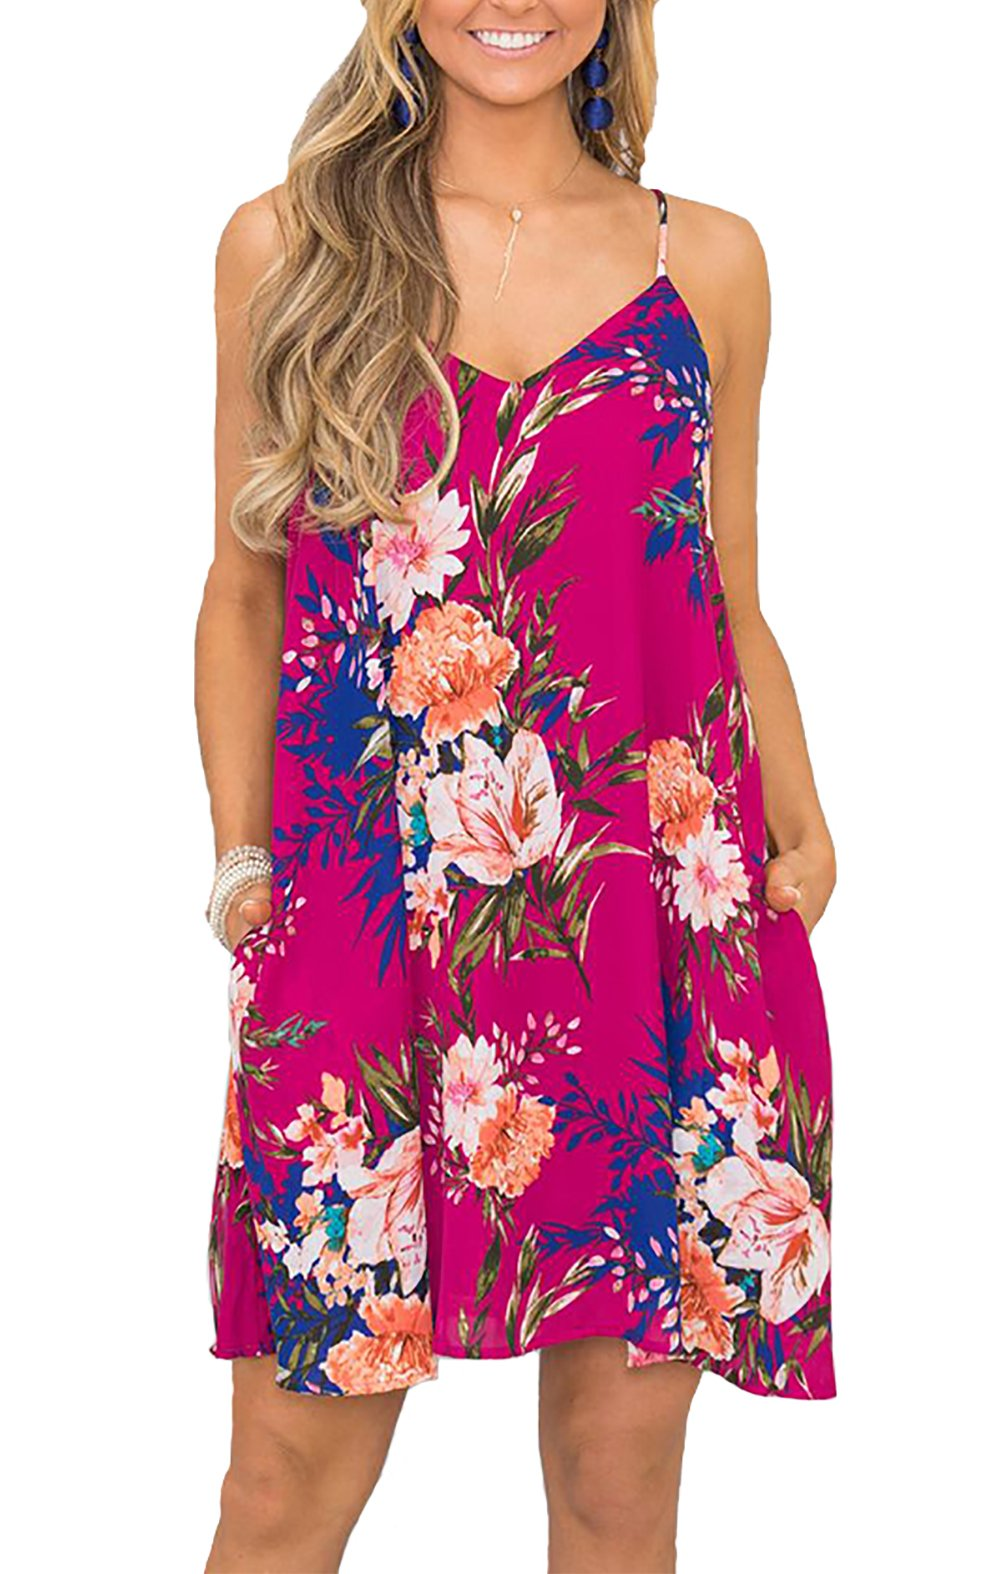 BTFBM Women's 2018 Summer Casual Floral Printed Sleeveless V-Neck Short Dress with Pockets (Rose Red, Large)